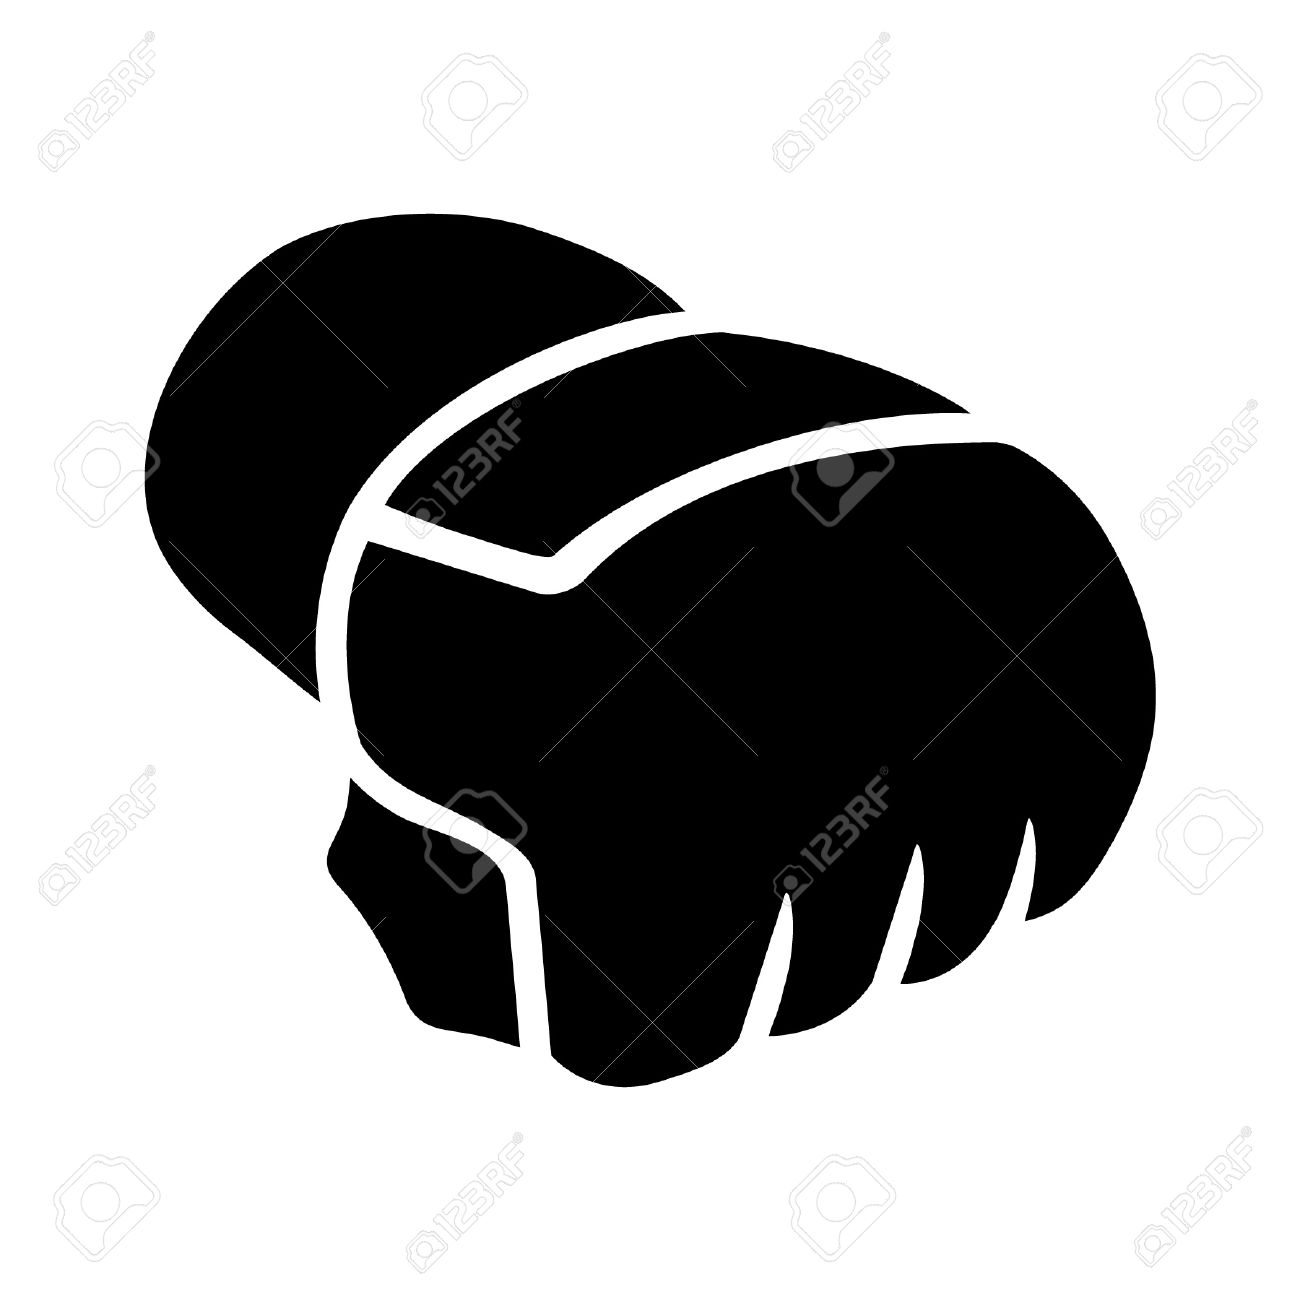 Mixed Martial Arts - MMA - gloves flat icon Stock Vector - 42411107